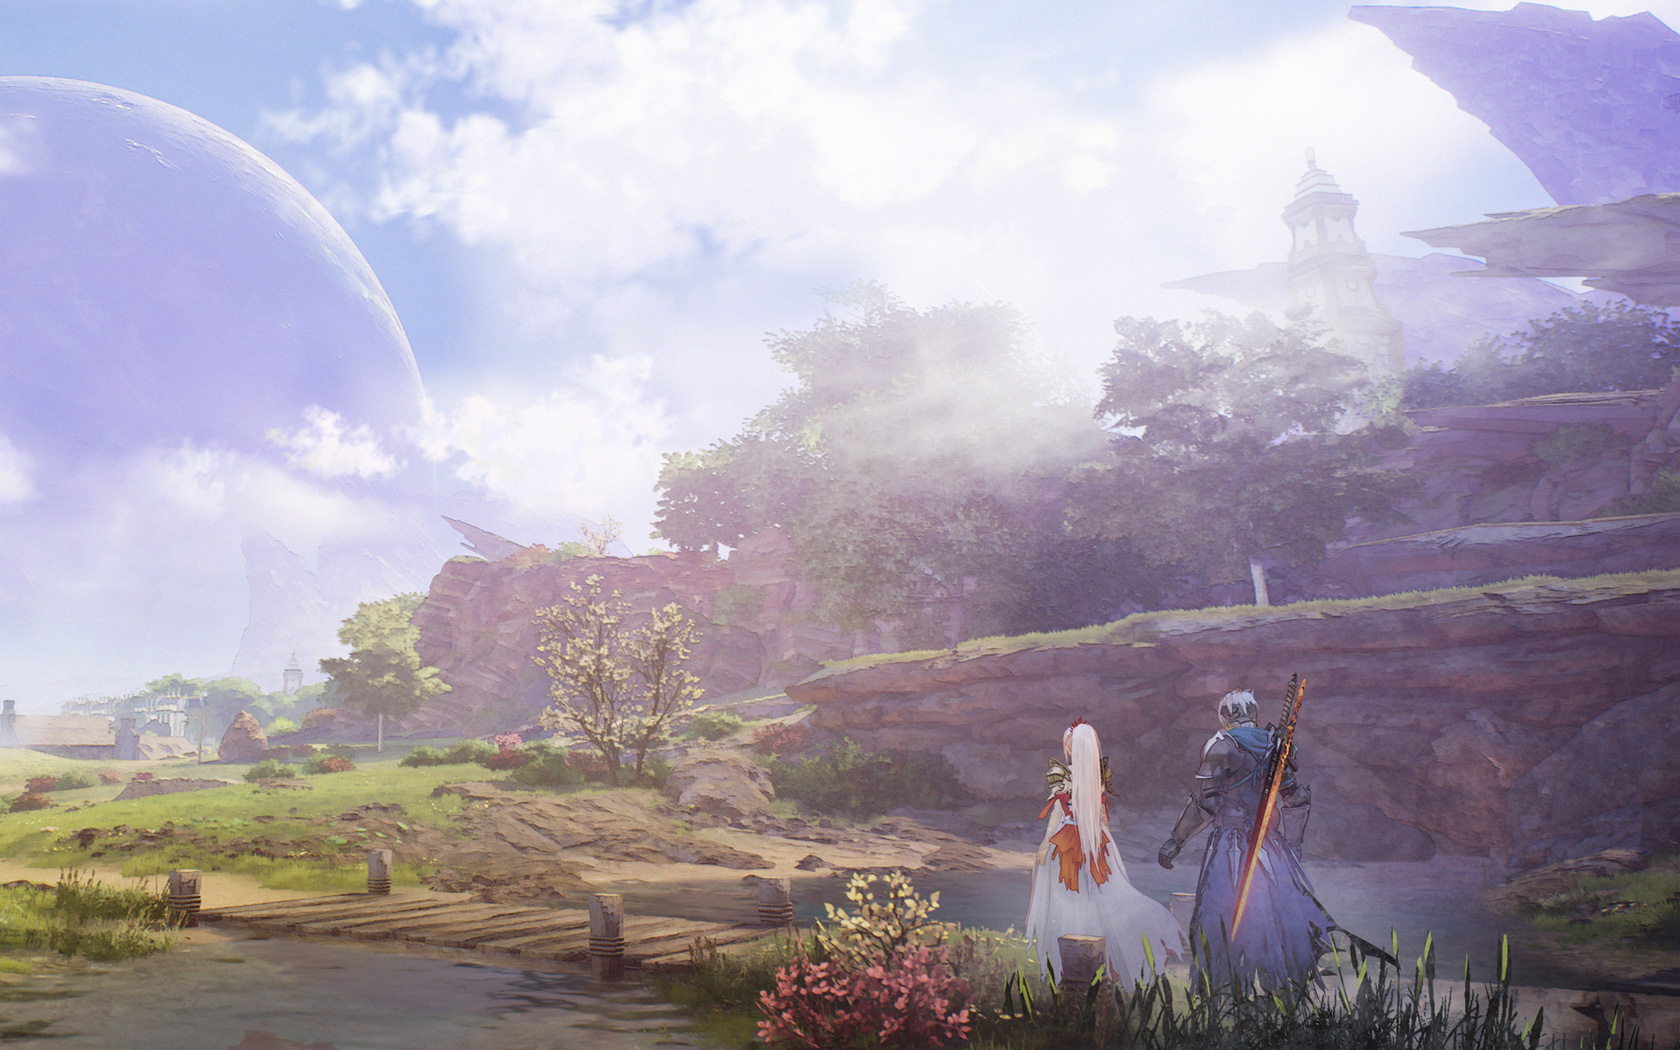 Tales of Arise Wallpaper in 1680x1050